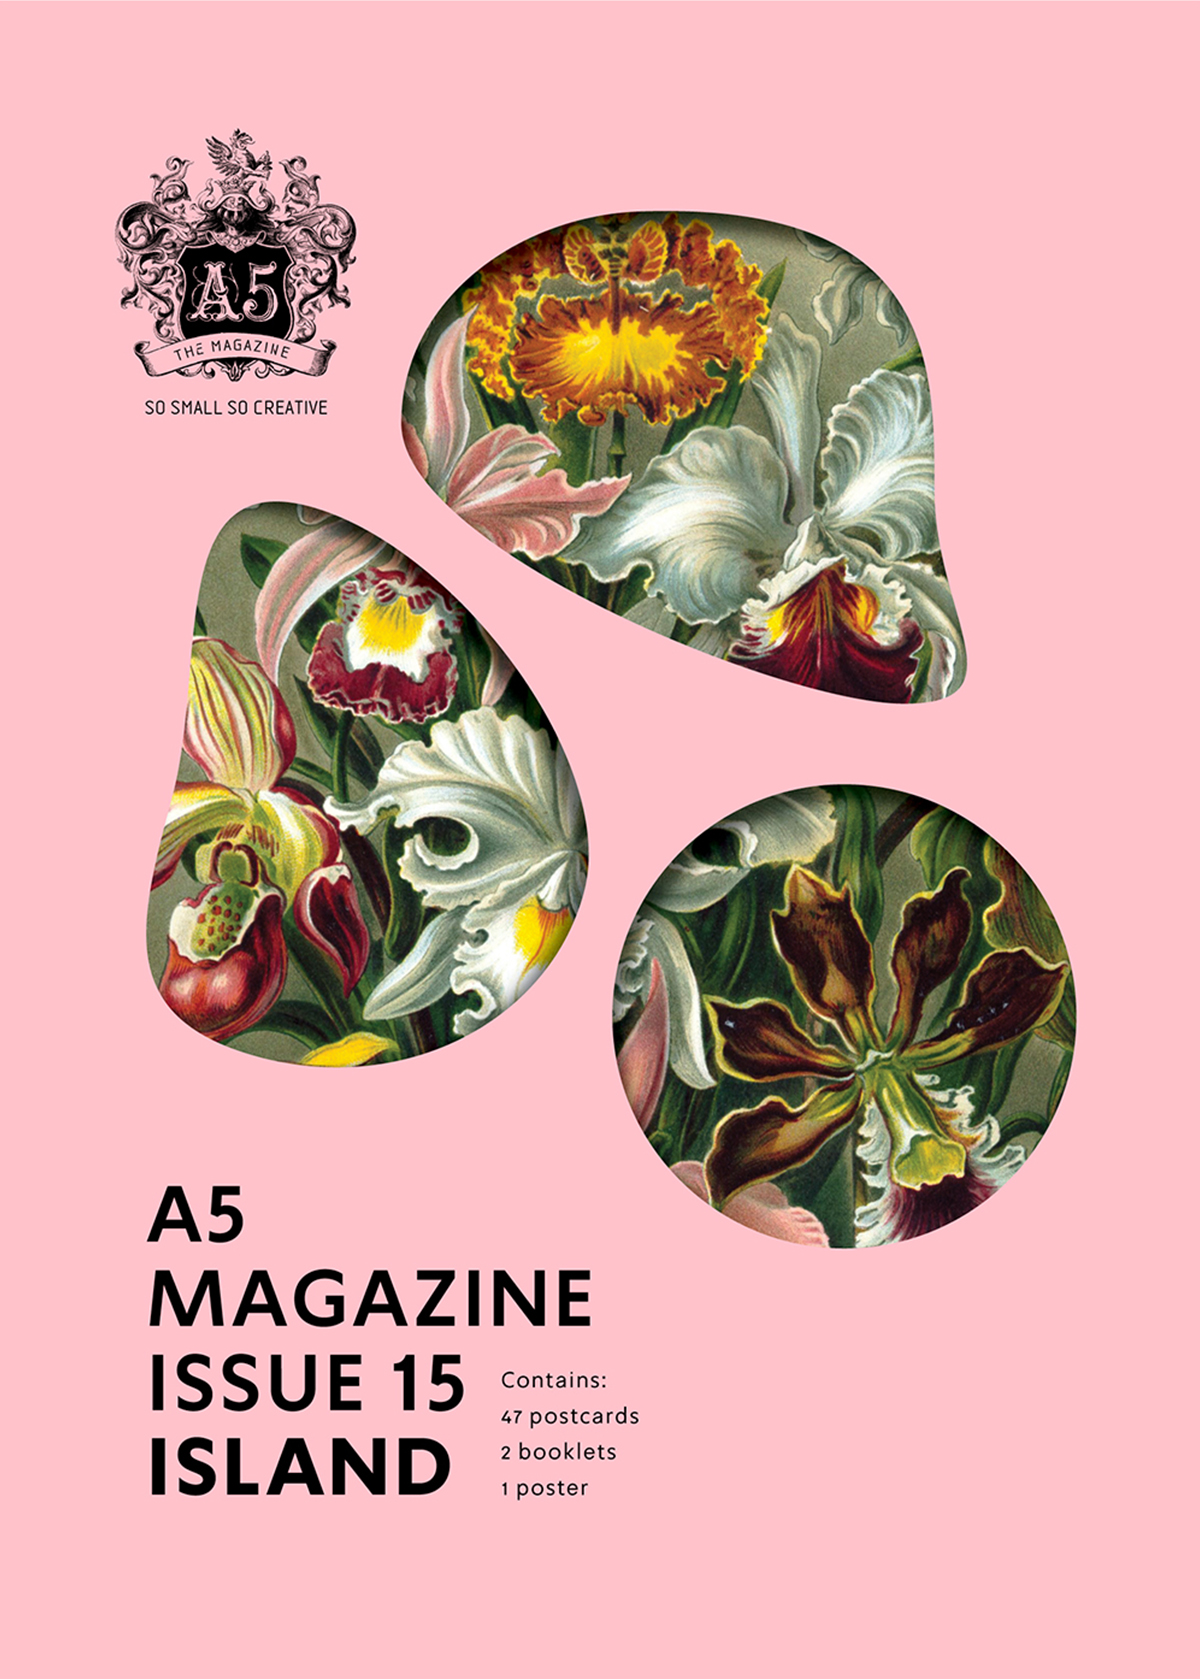 a5-magazine-island-issue-front-cover